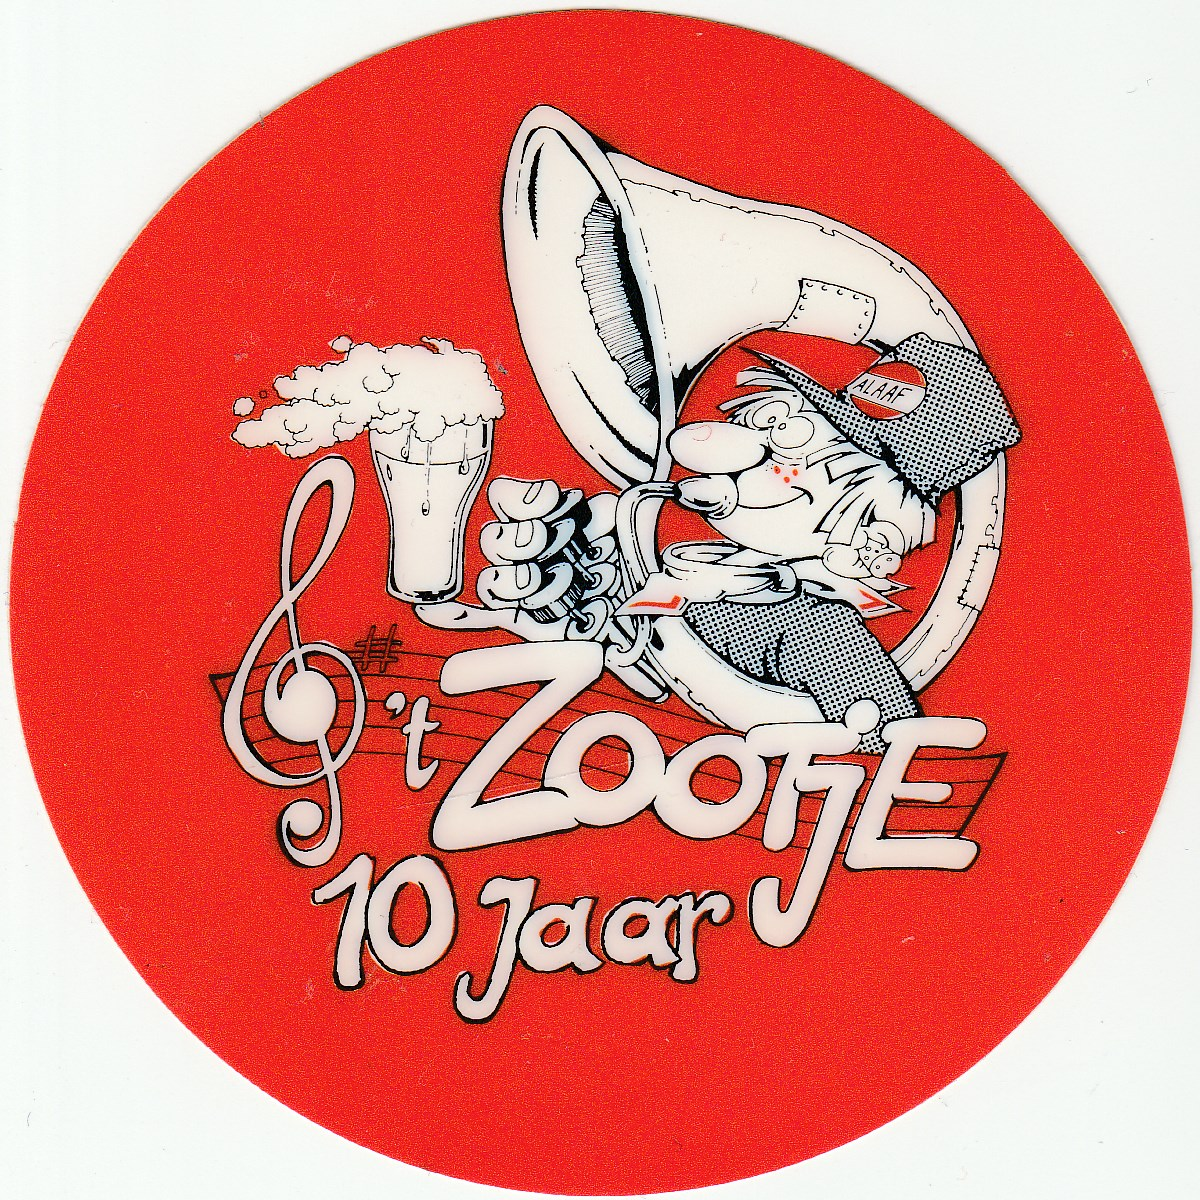 t Zootje sticker 02